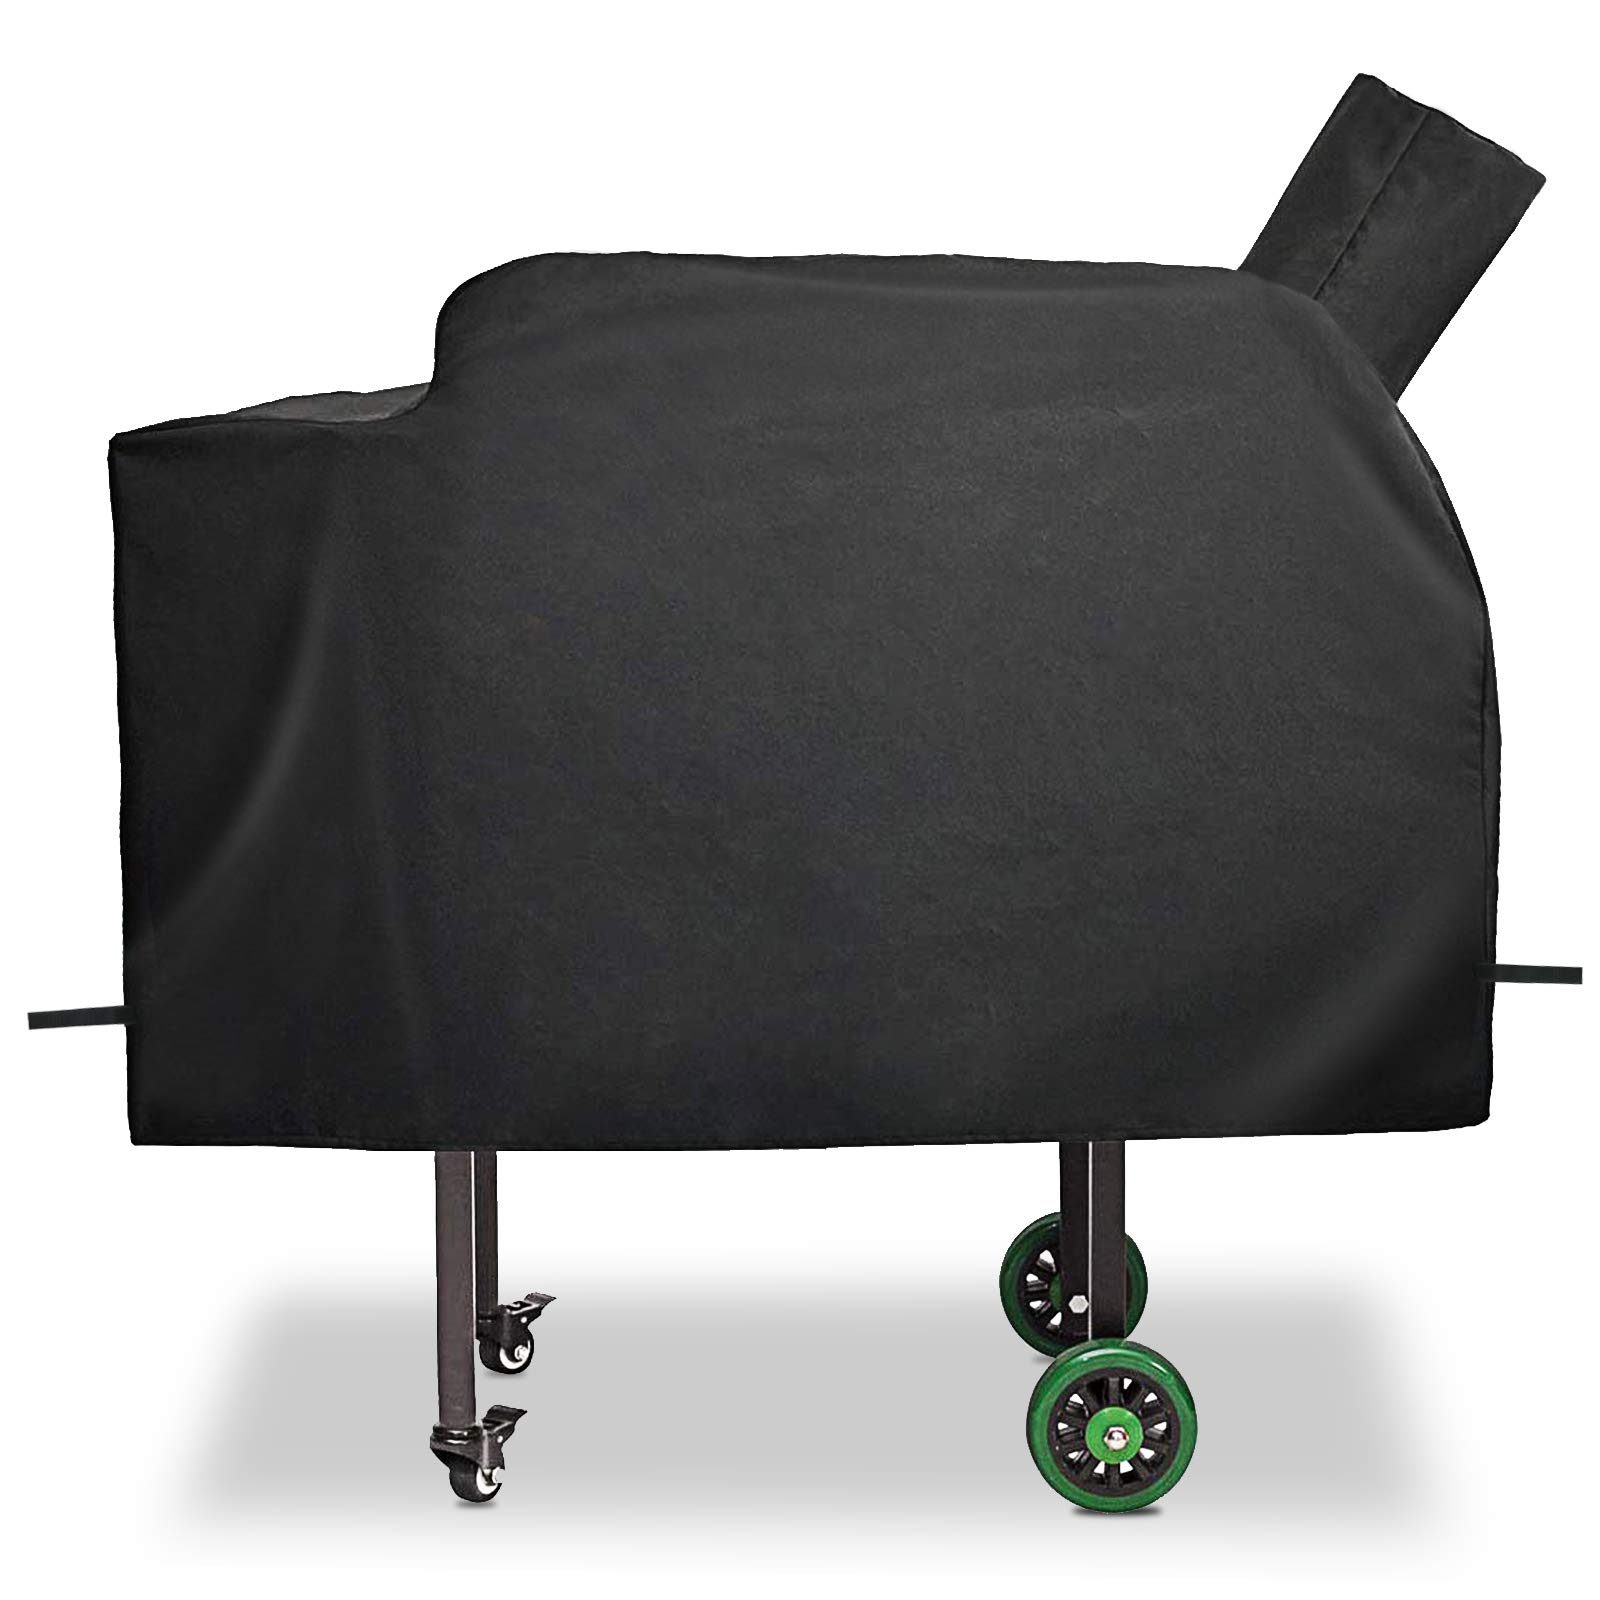 QuliMetal Pellet Grill Cover for Green Mountain Grill GMG-3001 Daniel Boone, Anti-UV & Waterproof Patio BBQ Grill Cover by QuliMetal